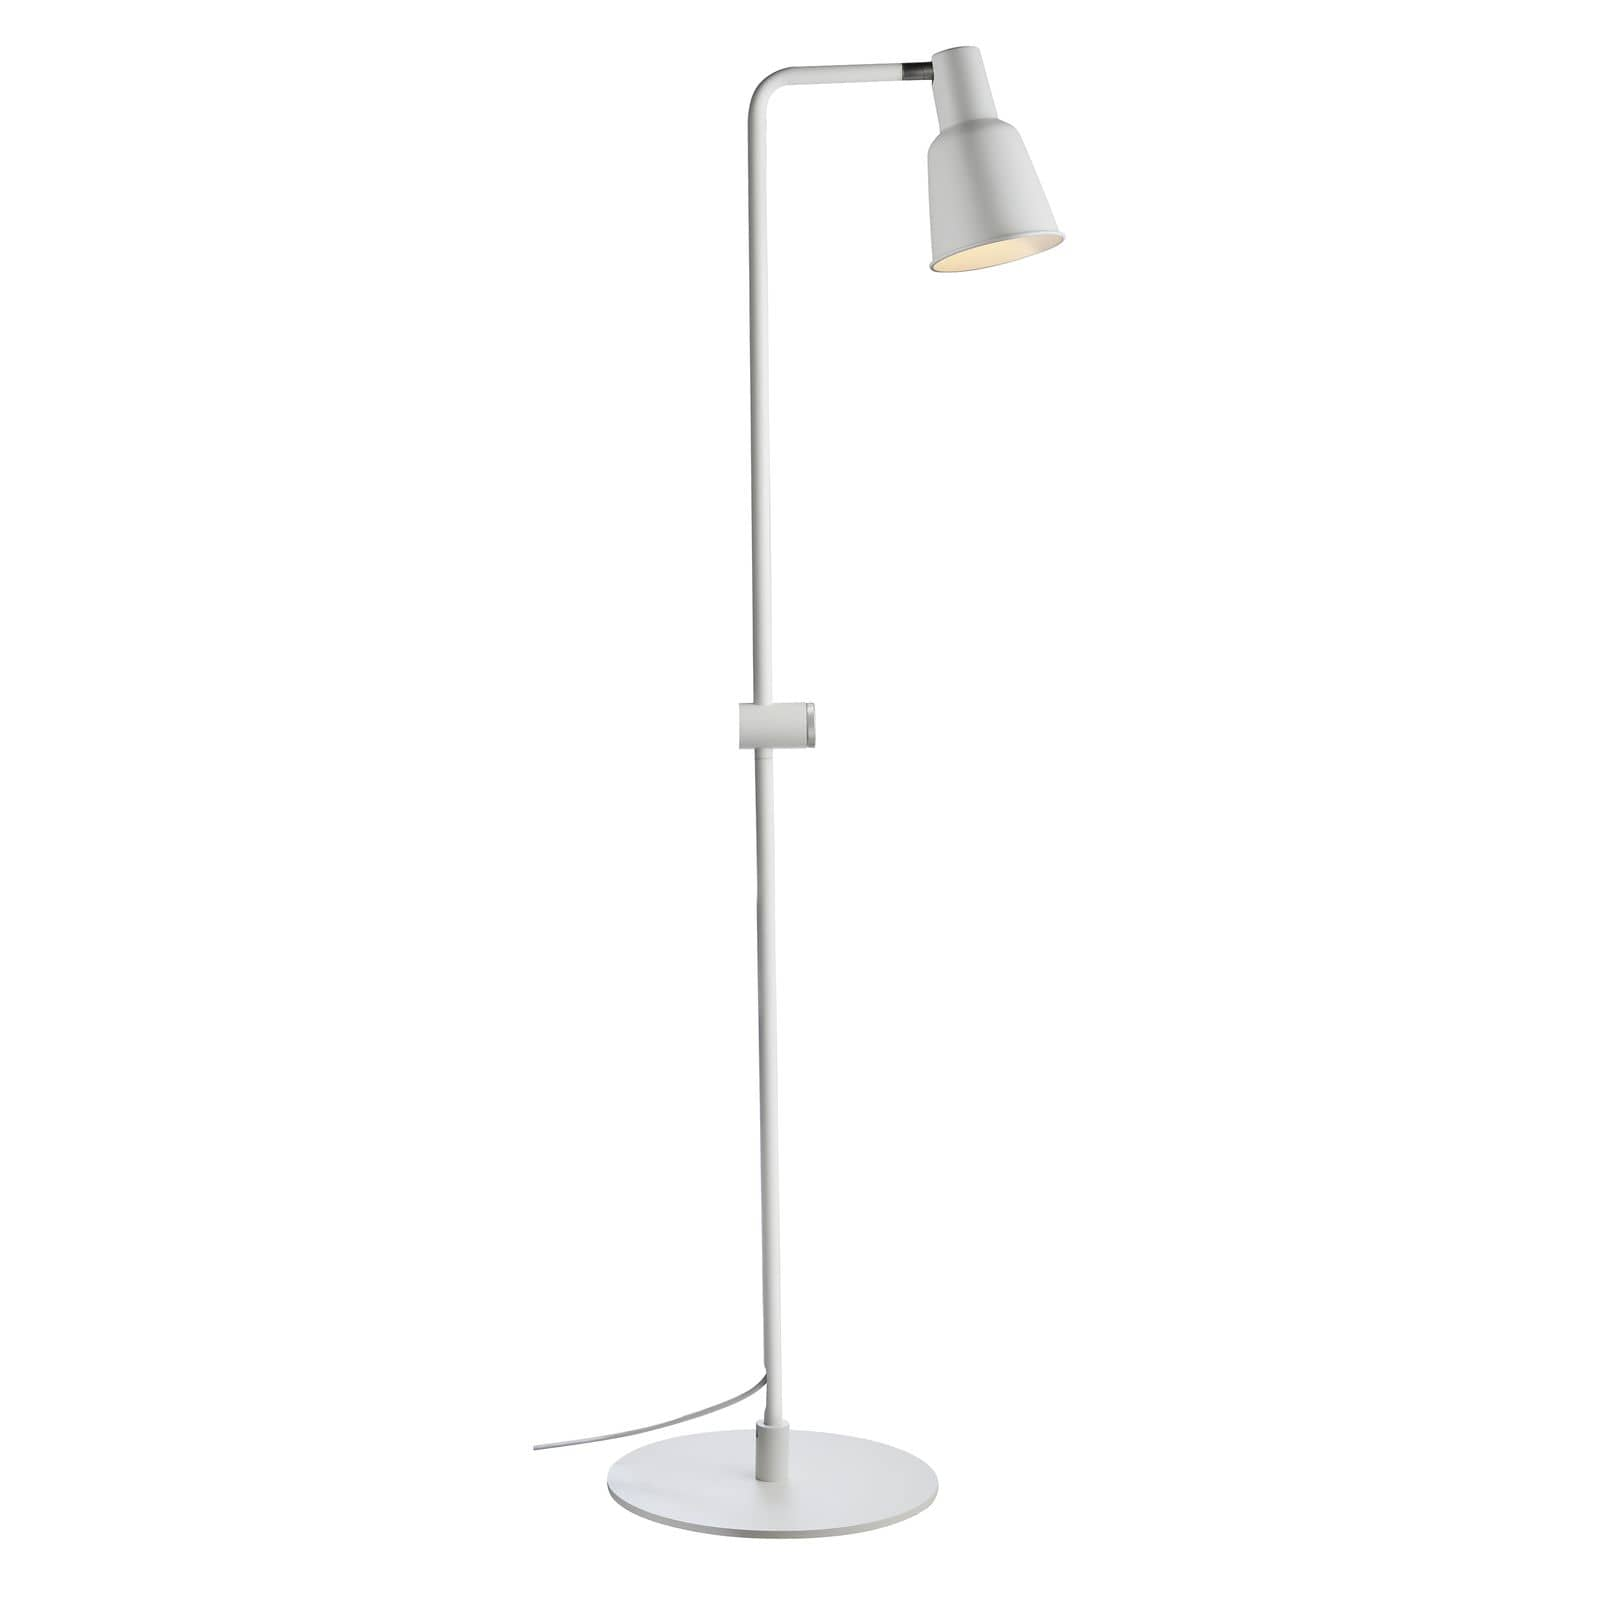 Full Size of Nordlu84464001 Patton E27 Dimmbar Stehleuchte Metall Weiss Stehlampe Schlafzimmer Stehlampen Wohnzimmer Wohnzimmer Stehlampe Dimmbar